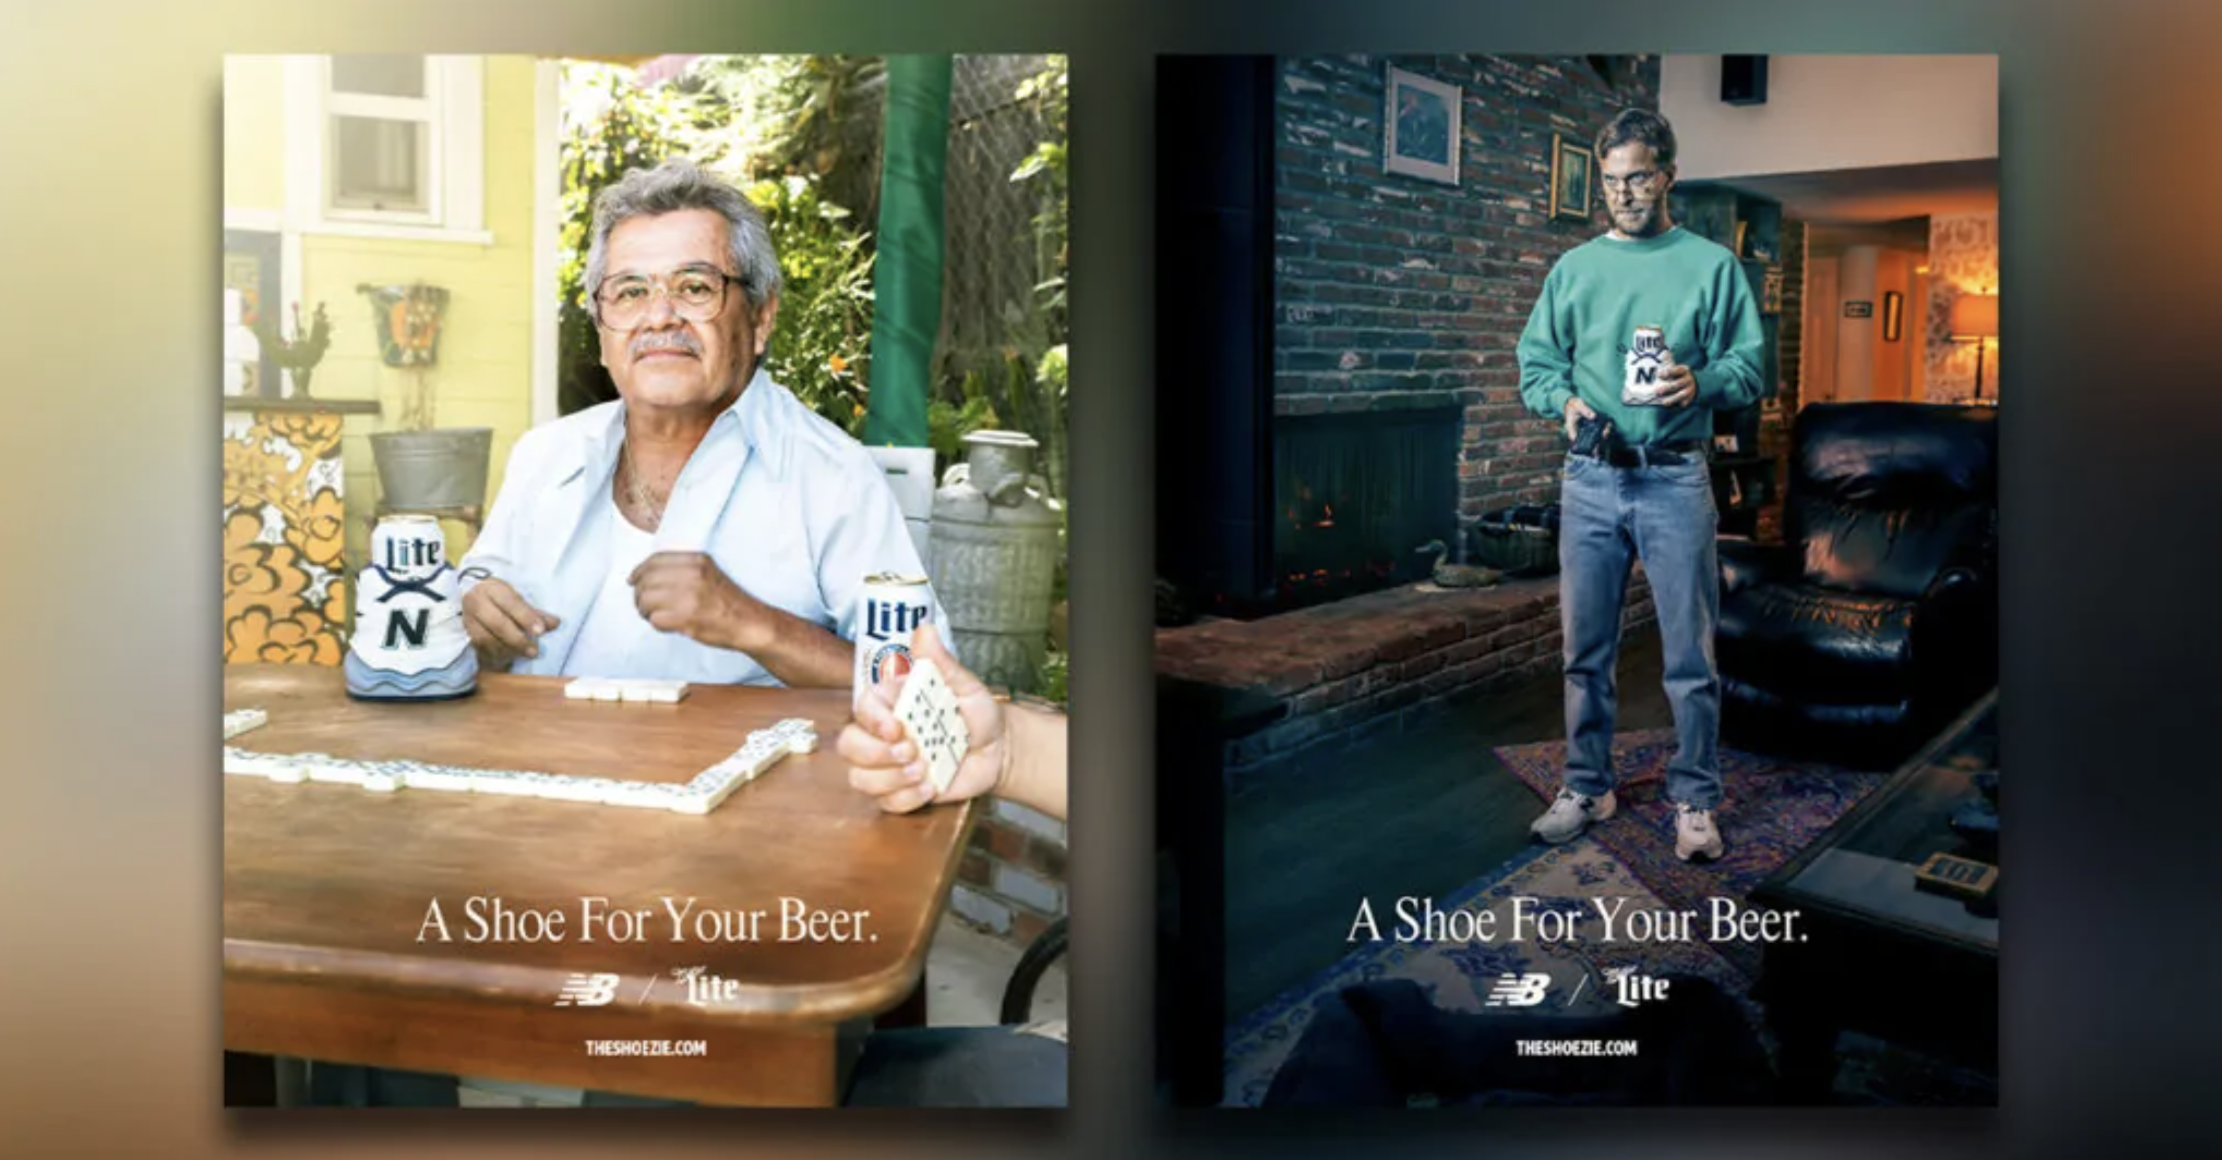 Father's day ads in 2021 can be quirky, funny and meme-inspired.